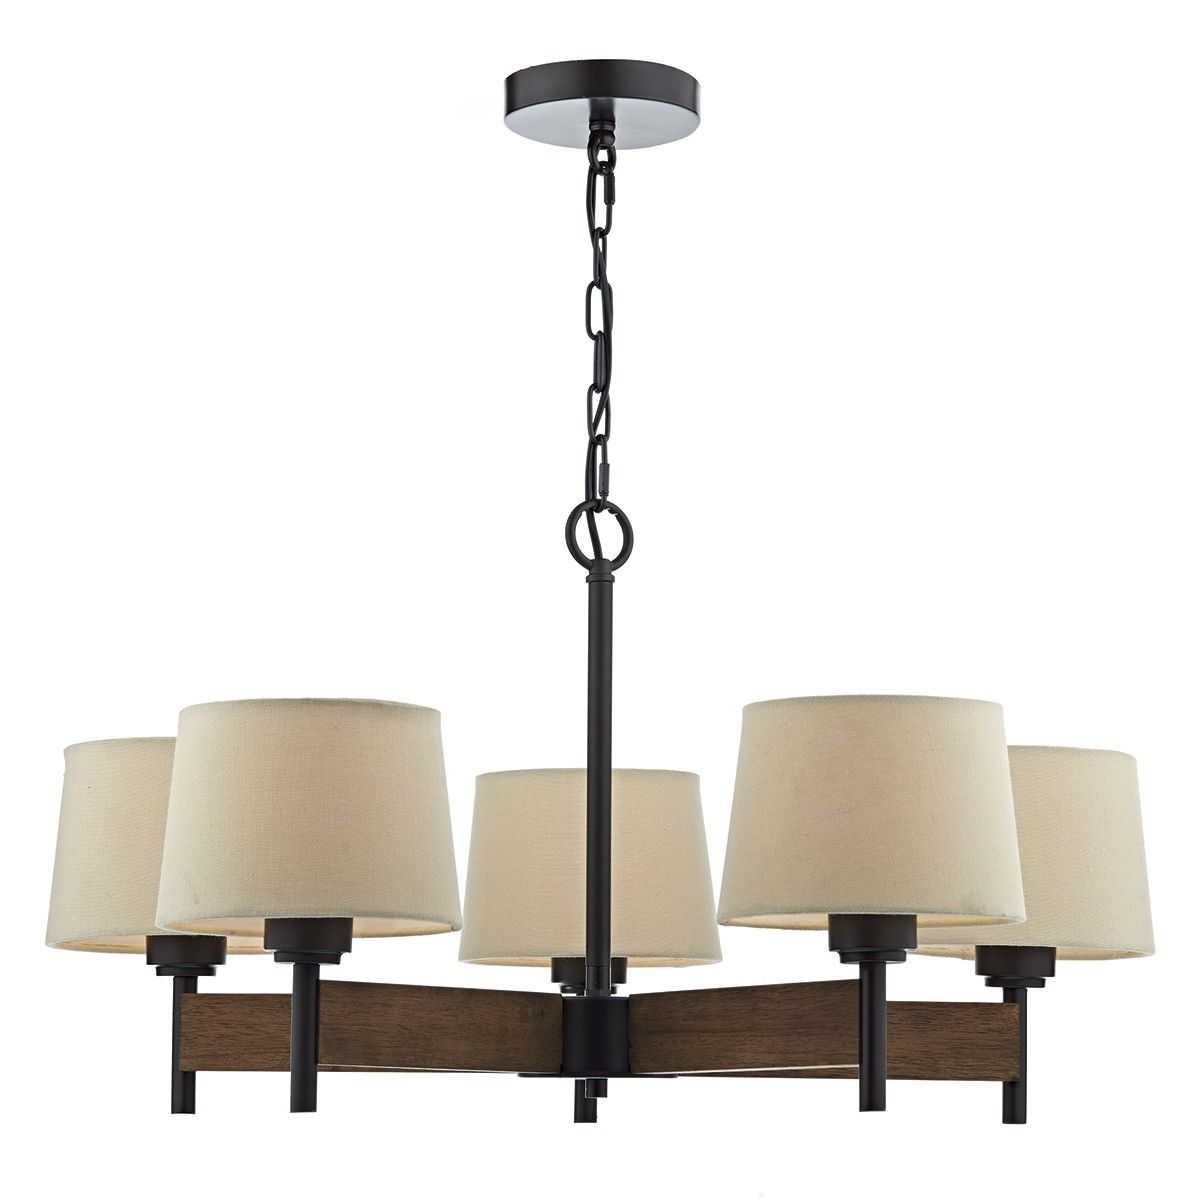 Ewan 5 Arm Pendant Ceiling Light With Shades Ewa0547